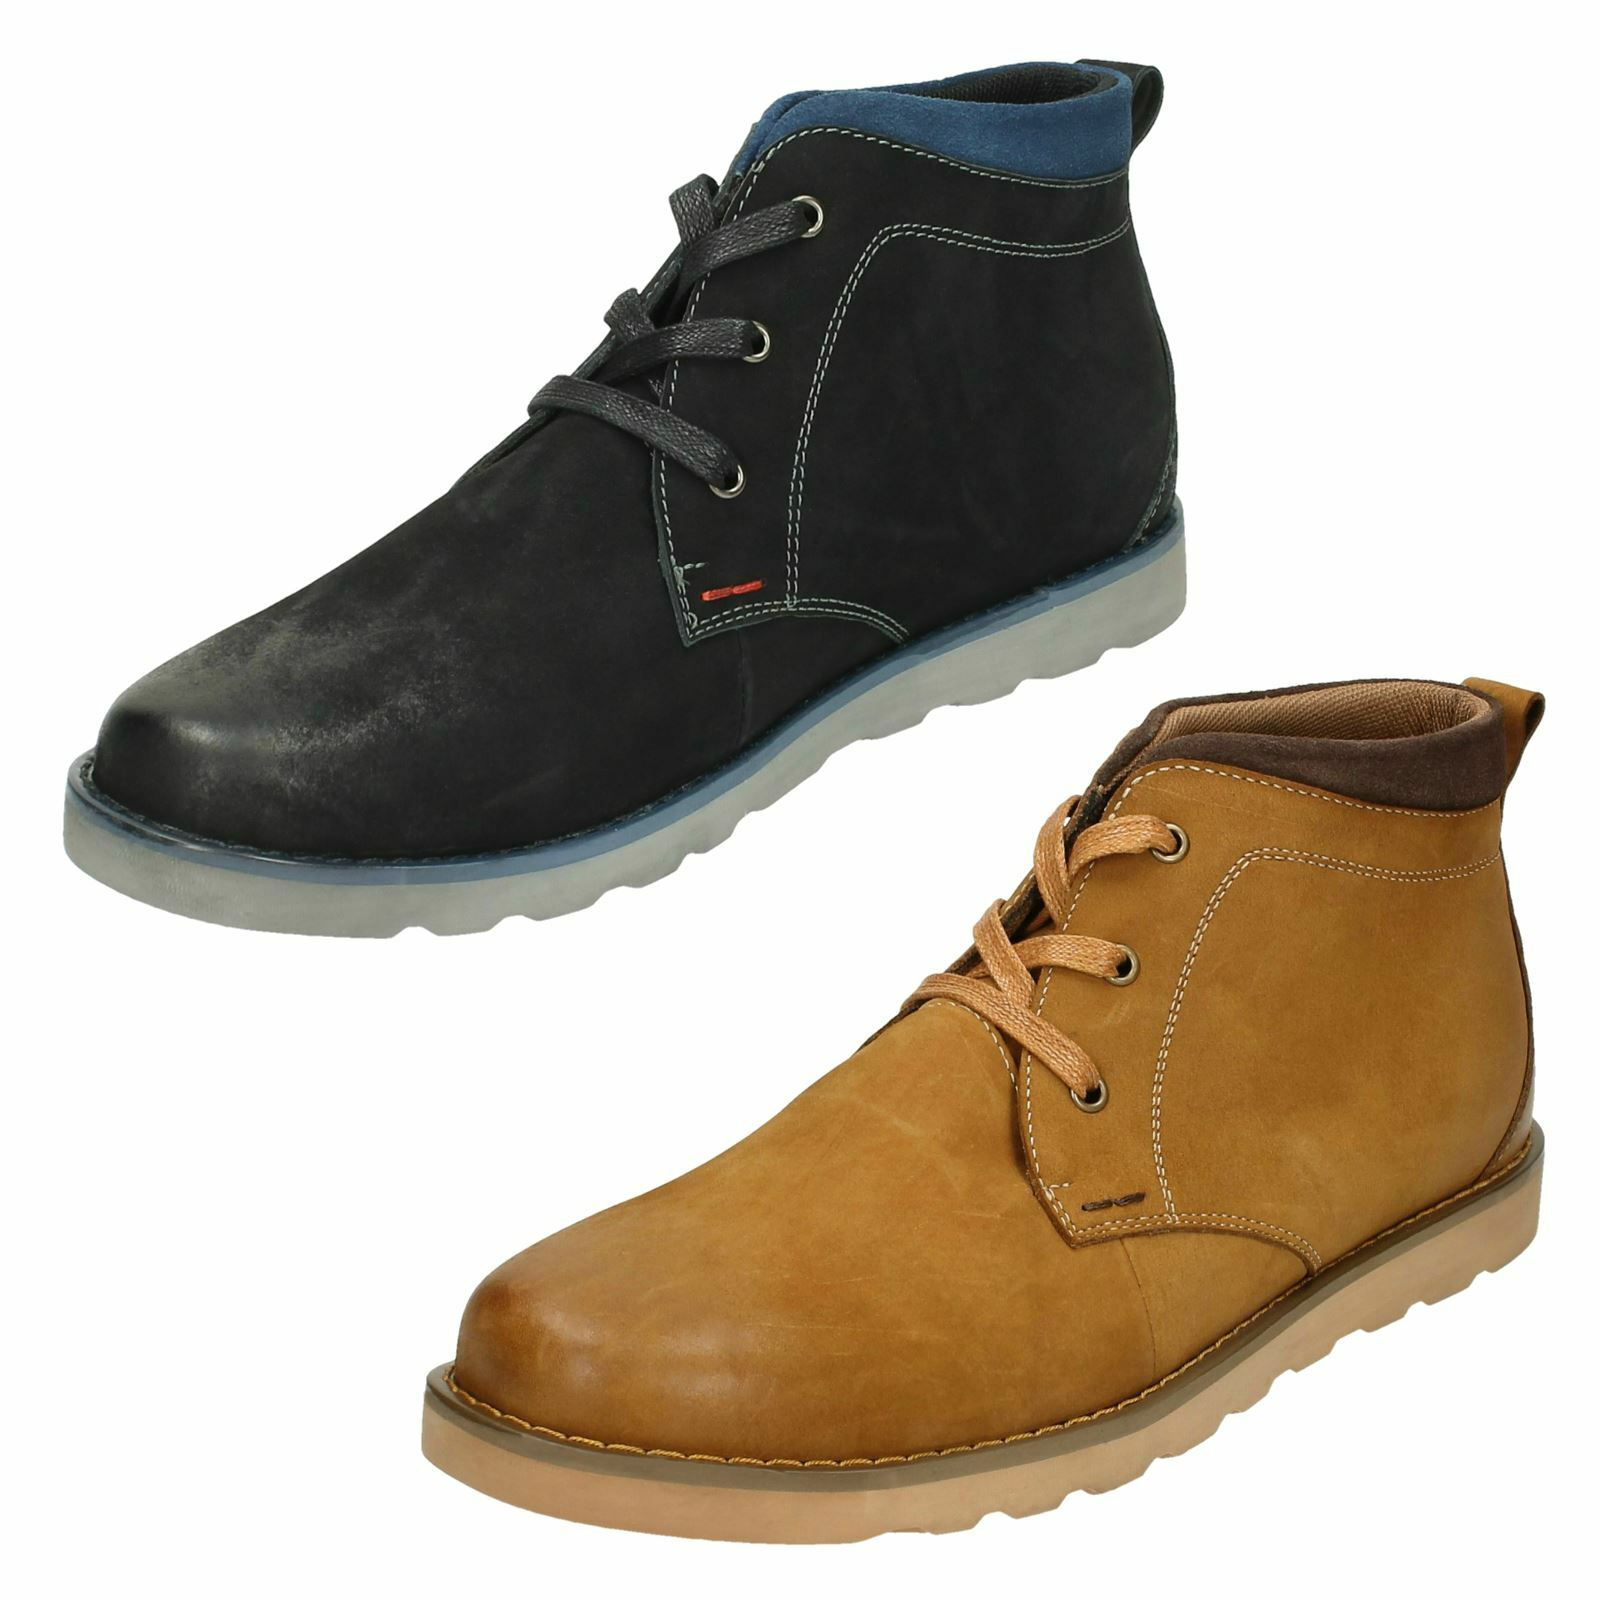 Mens Thomas Blunt Ankle Boots - Casual